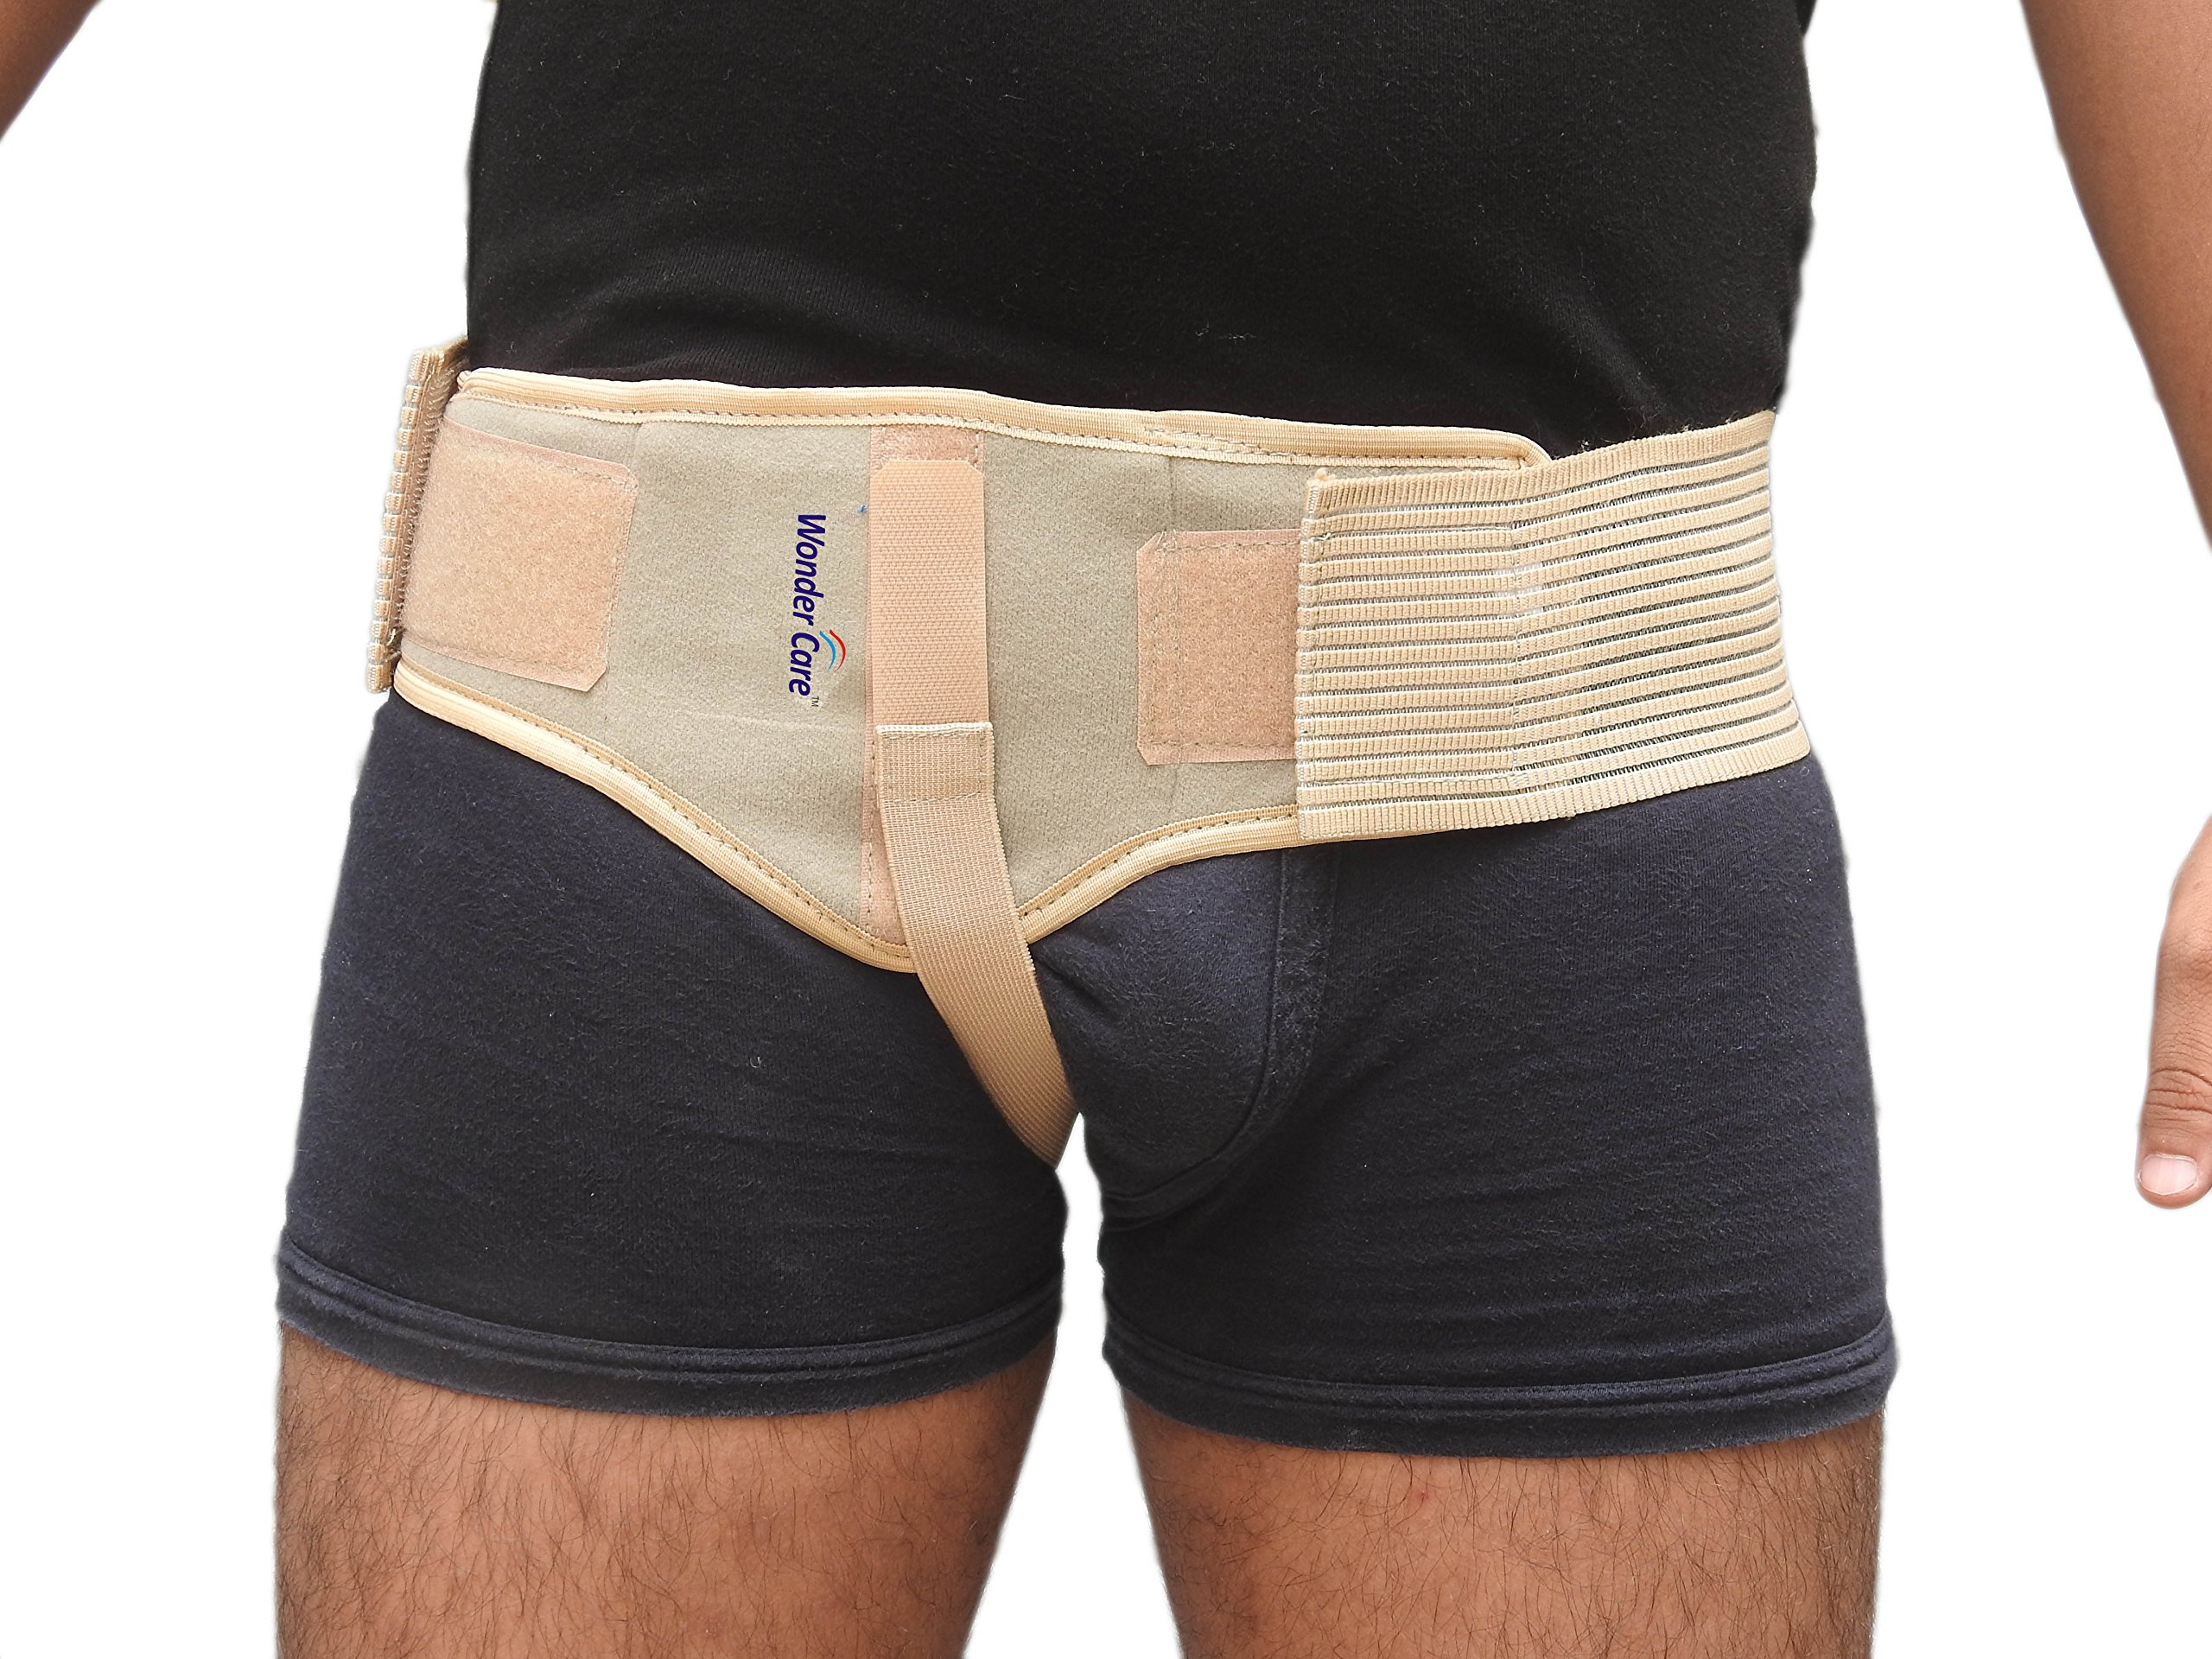 Wonder Care- Inguinal Hernia Support Truss for Single Inguinal or Sports Hernia with one Removable Compression Pads & Adjustable Groin Straps Surgery & injury Recover A-103 Right-M